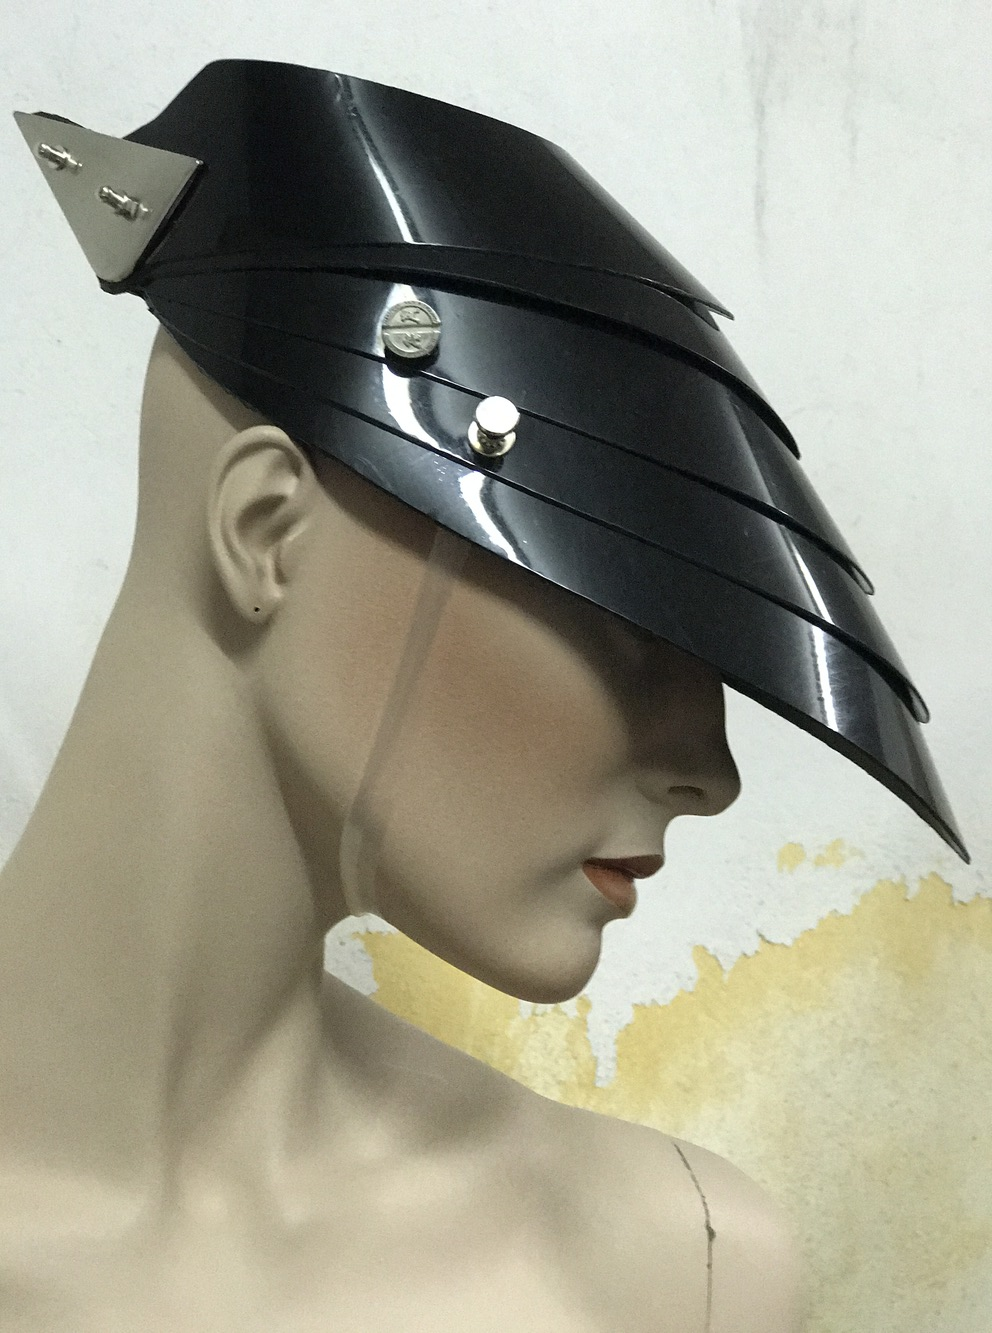 Unusual Head Wear futuristic, mask hat headpiece helmet modern Steampunk wearable art solid black